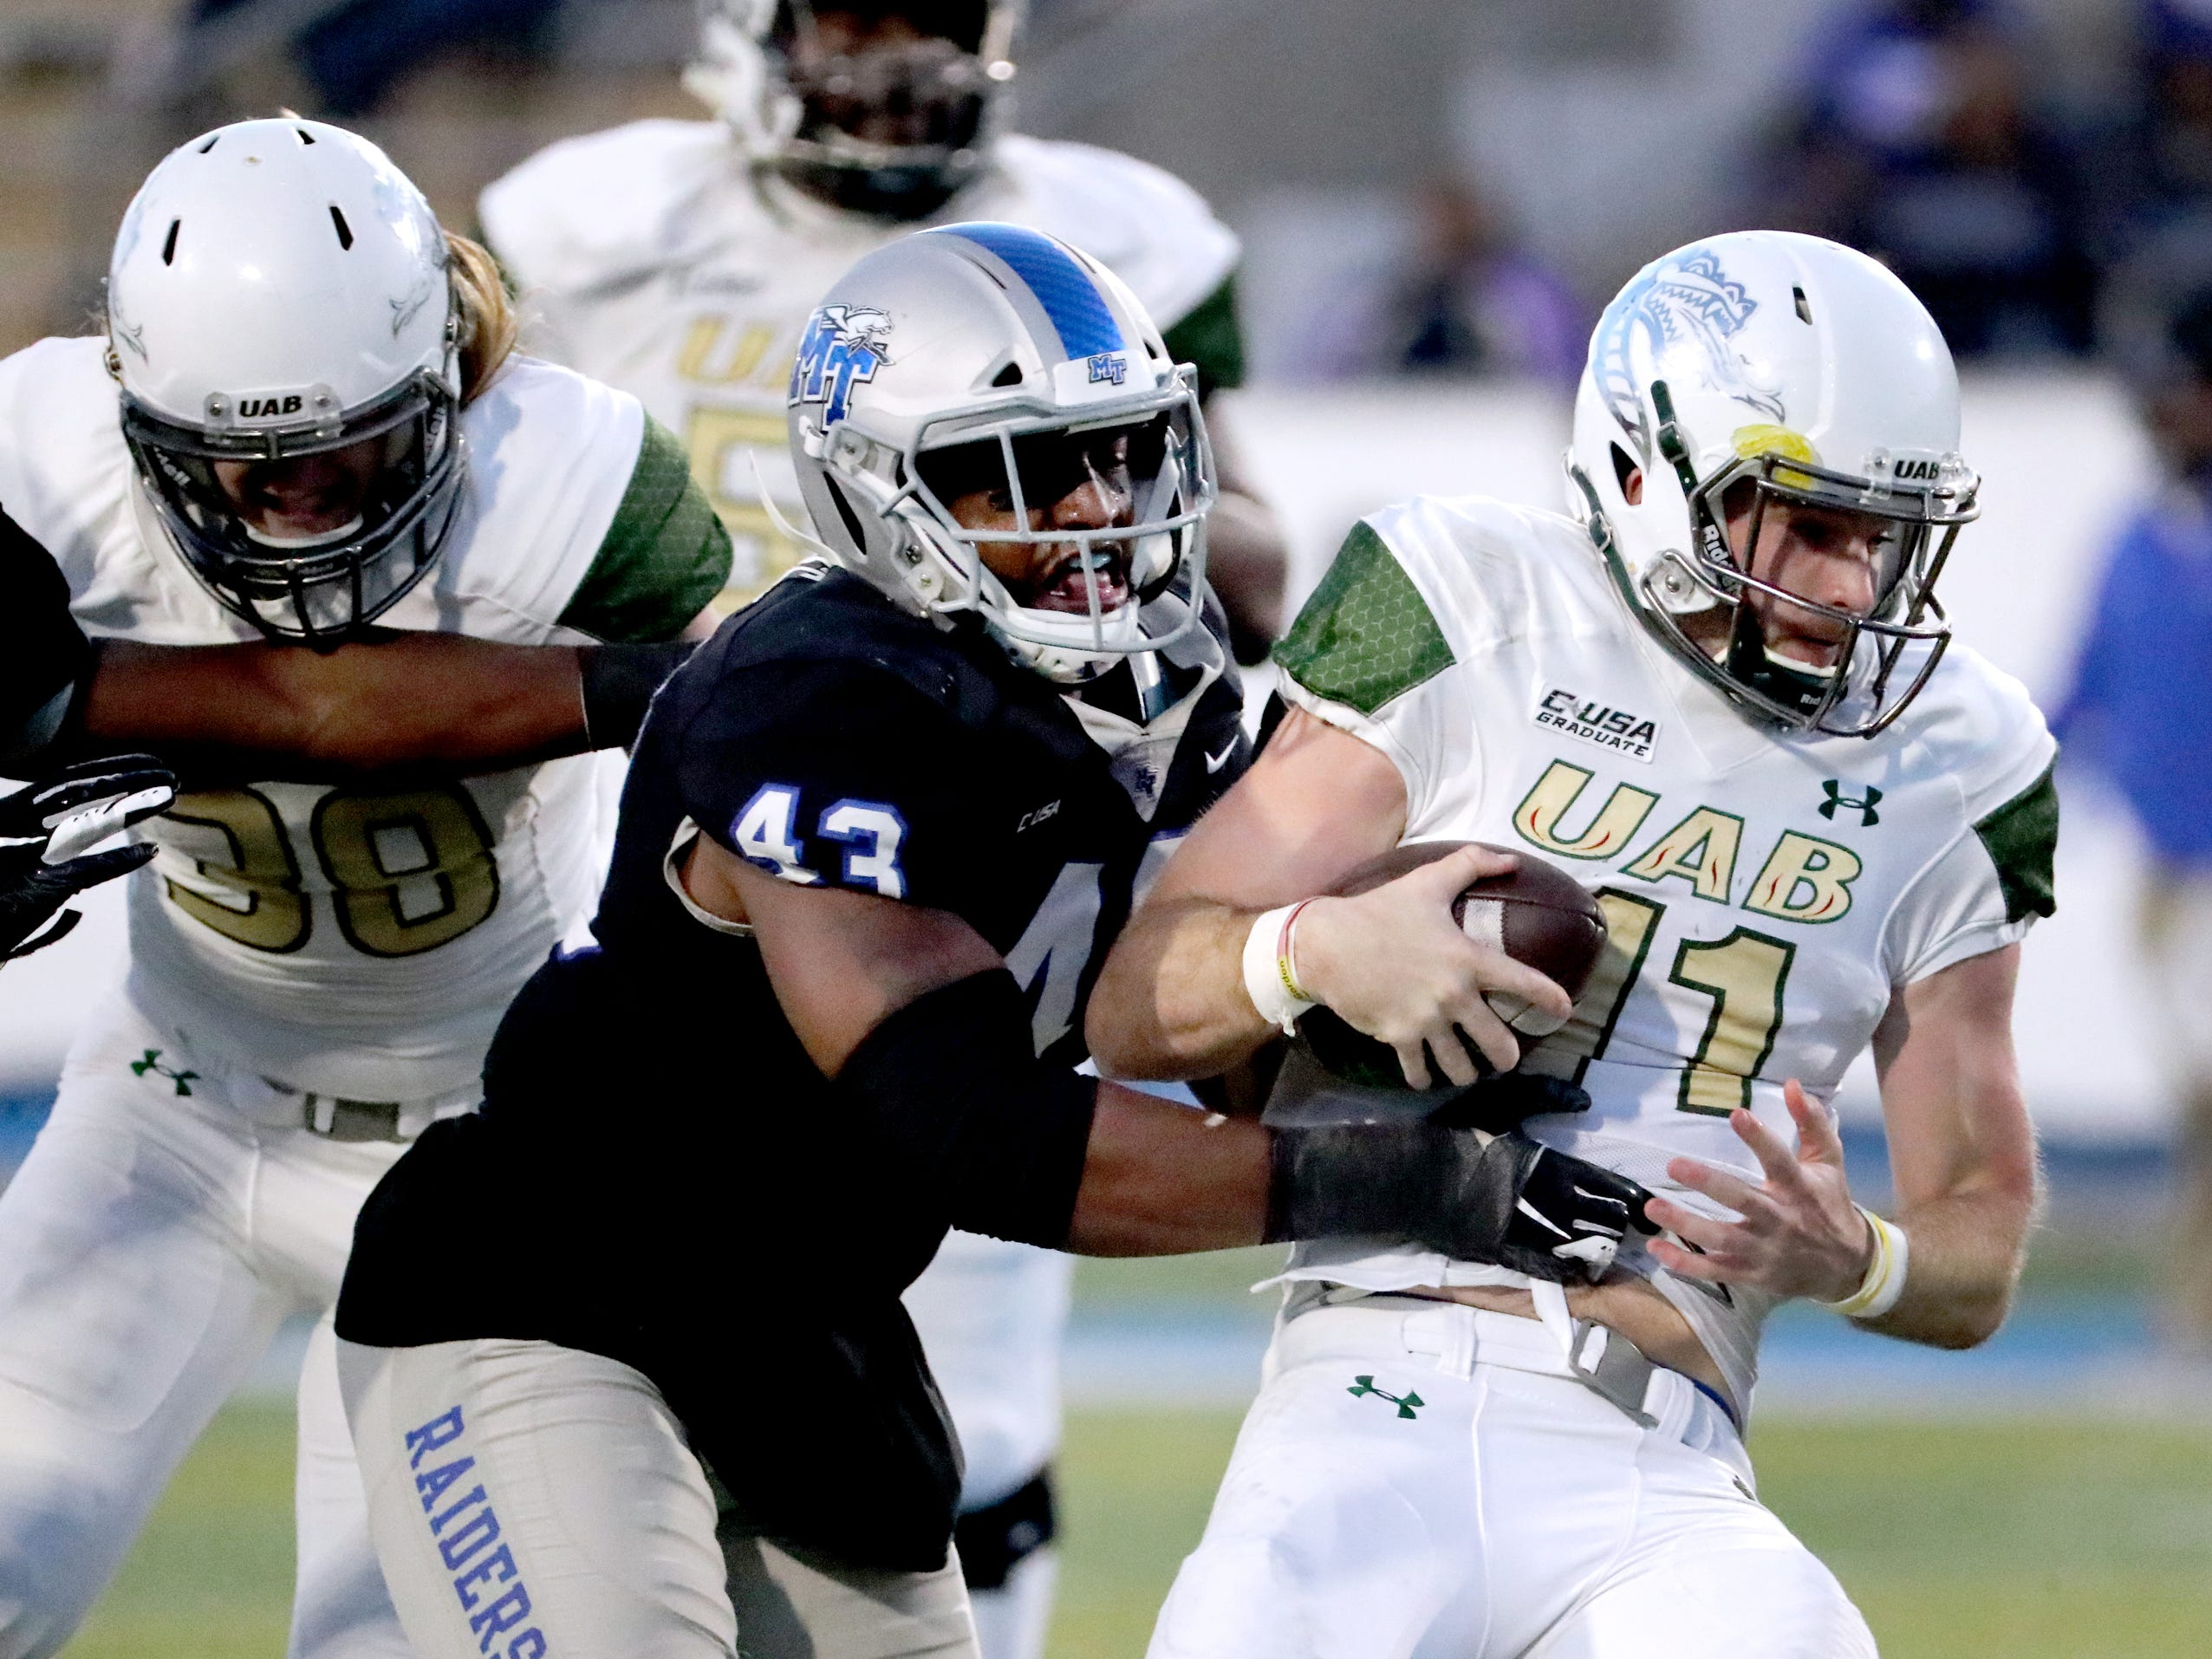 MTSU's () runs the ball as he is tackled by UAB's () during the game at MTSU on Saturday, Nov. 24, 2018.